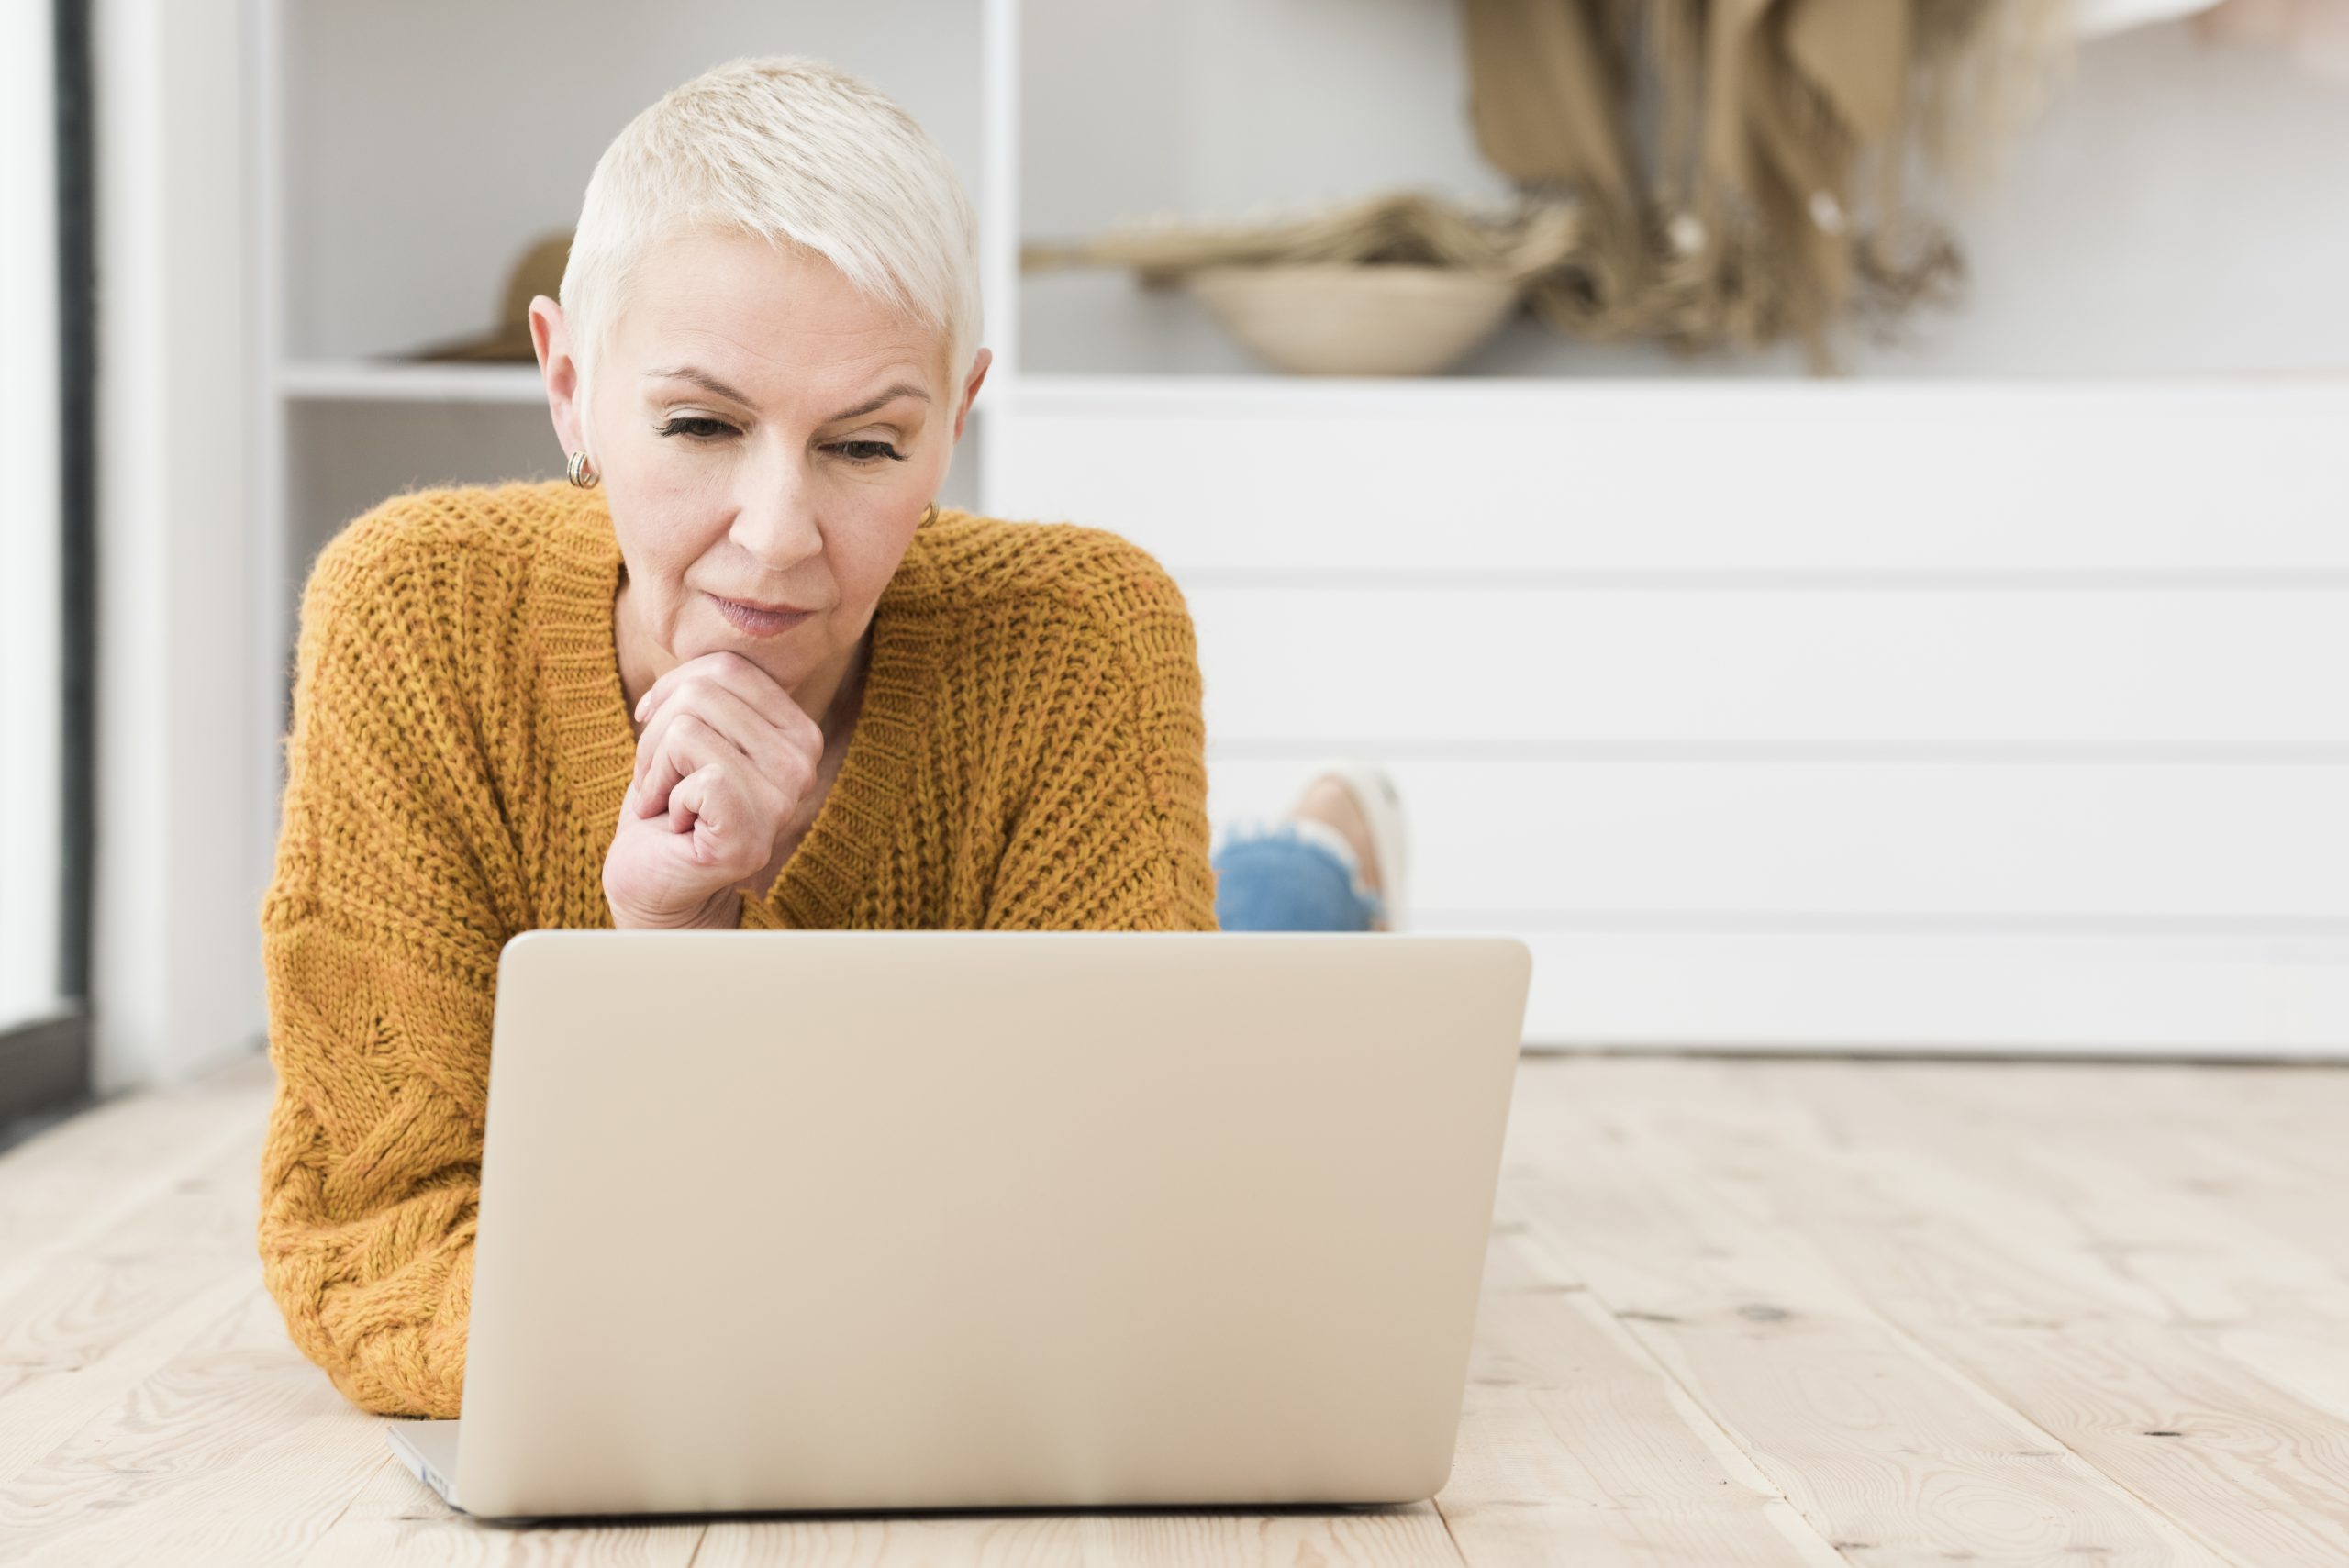 Older woman laying on floor looking at laptop considering second opinion on fibroids